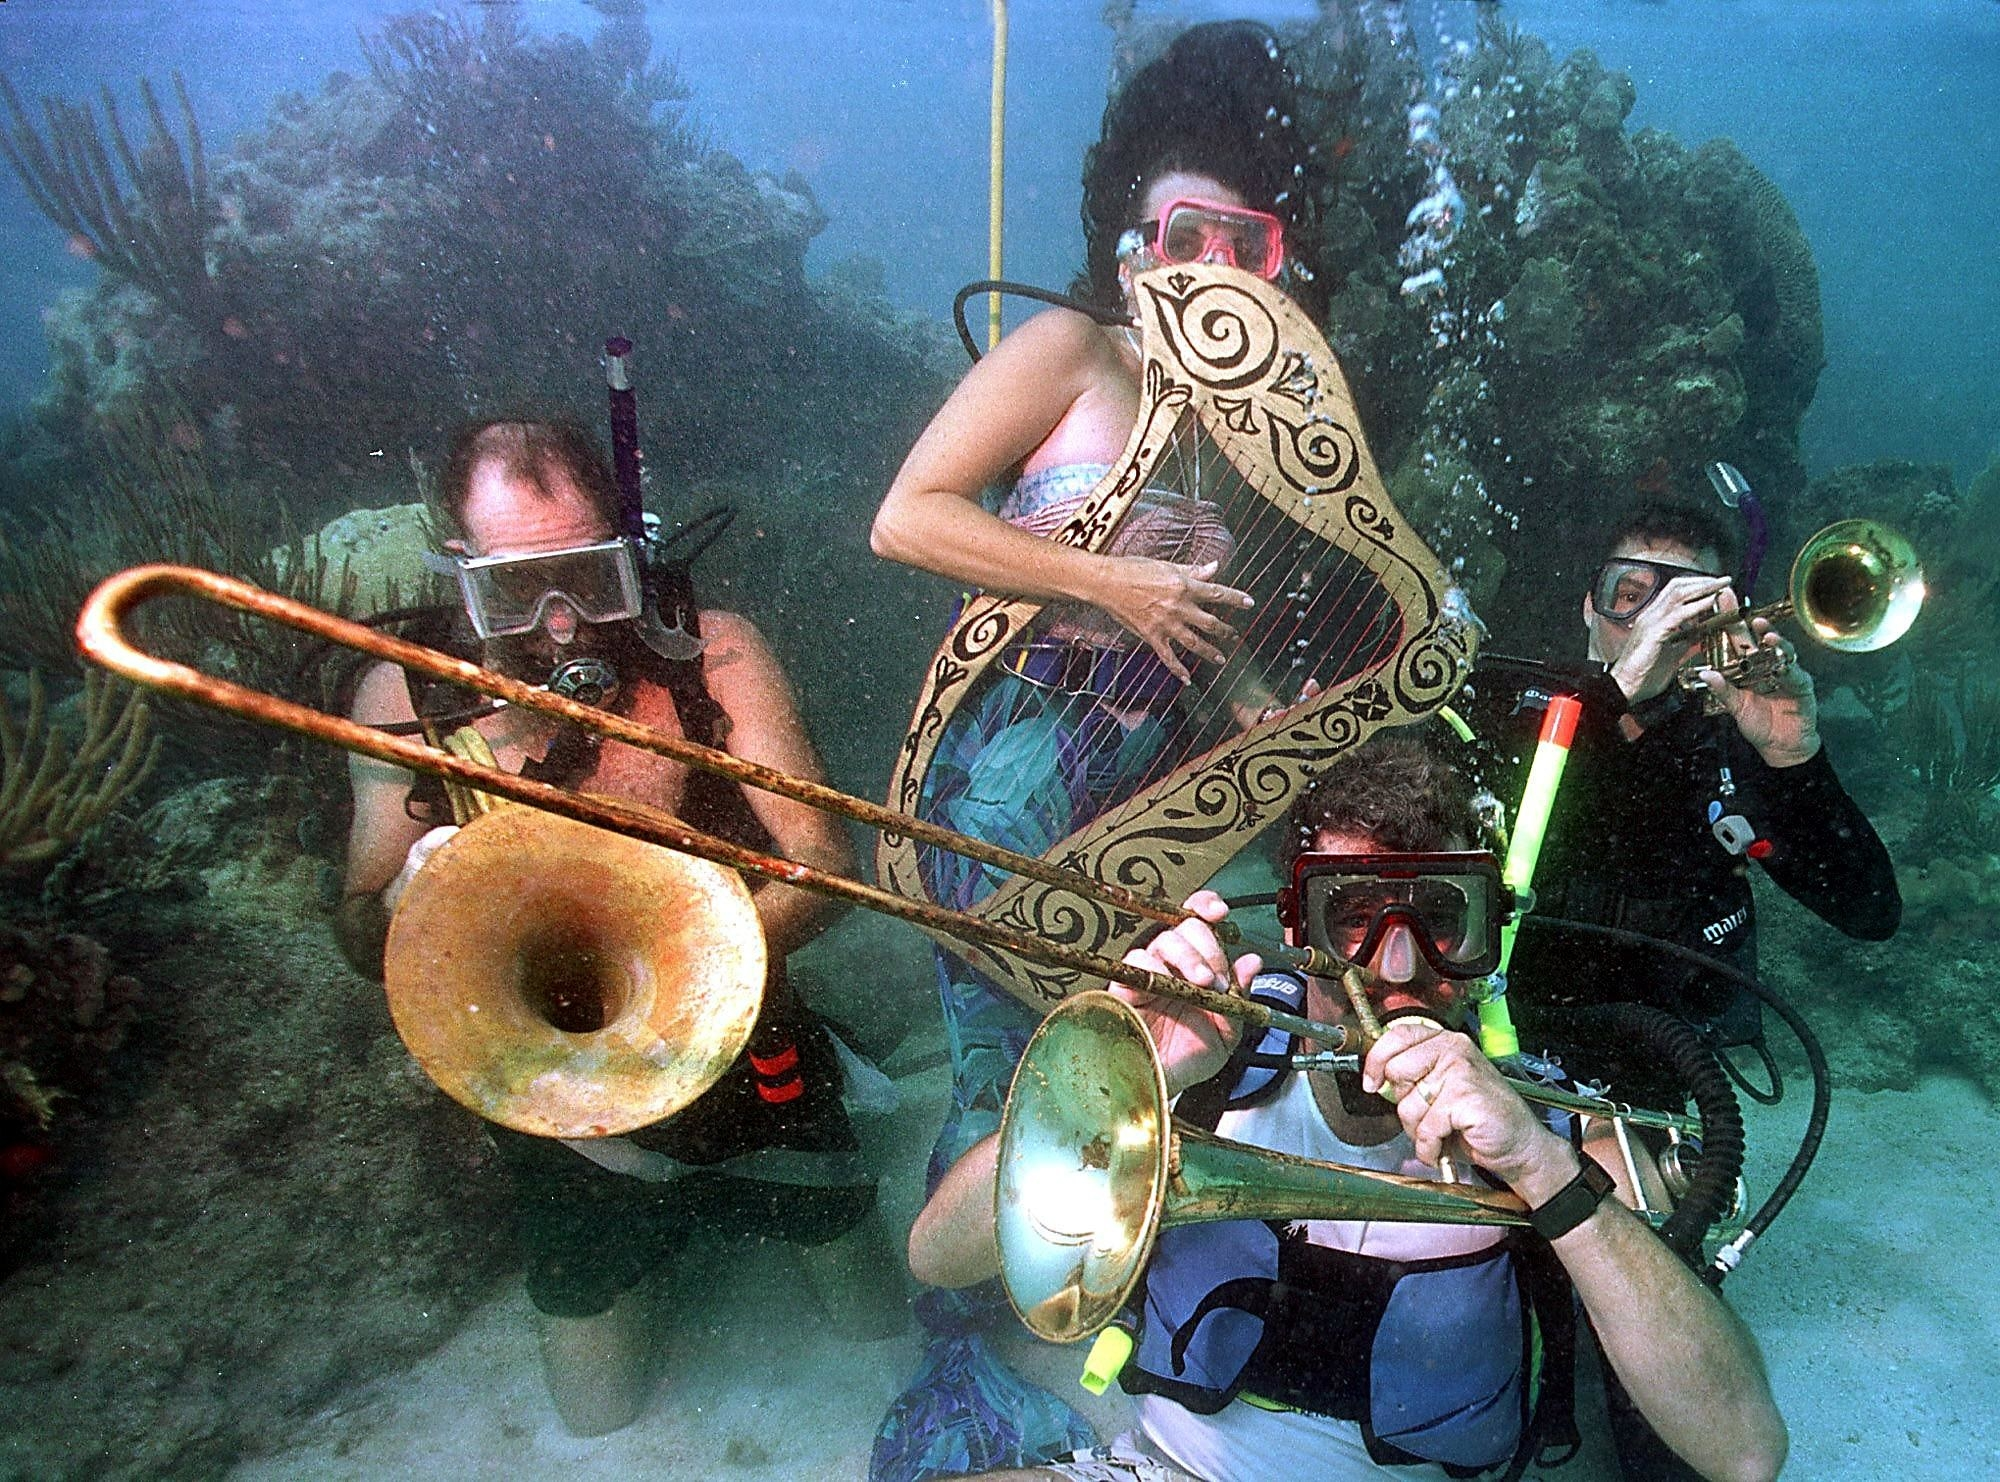 divers playing a harp, trumpet, and saxophone underwater